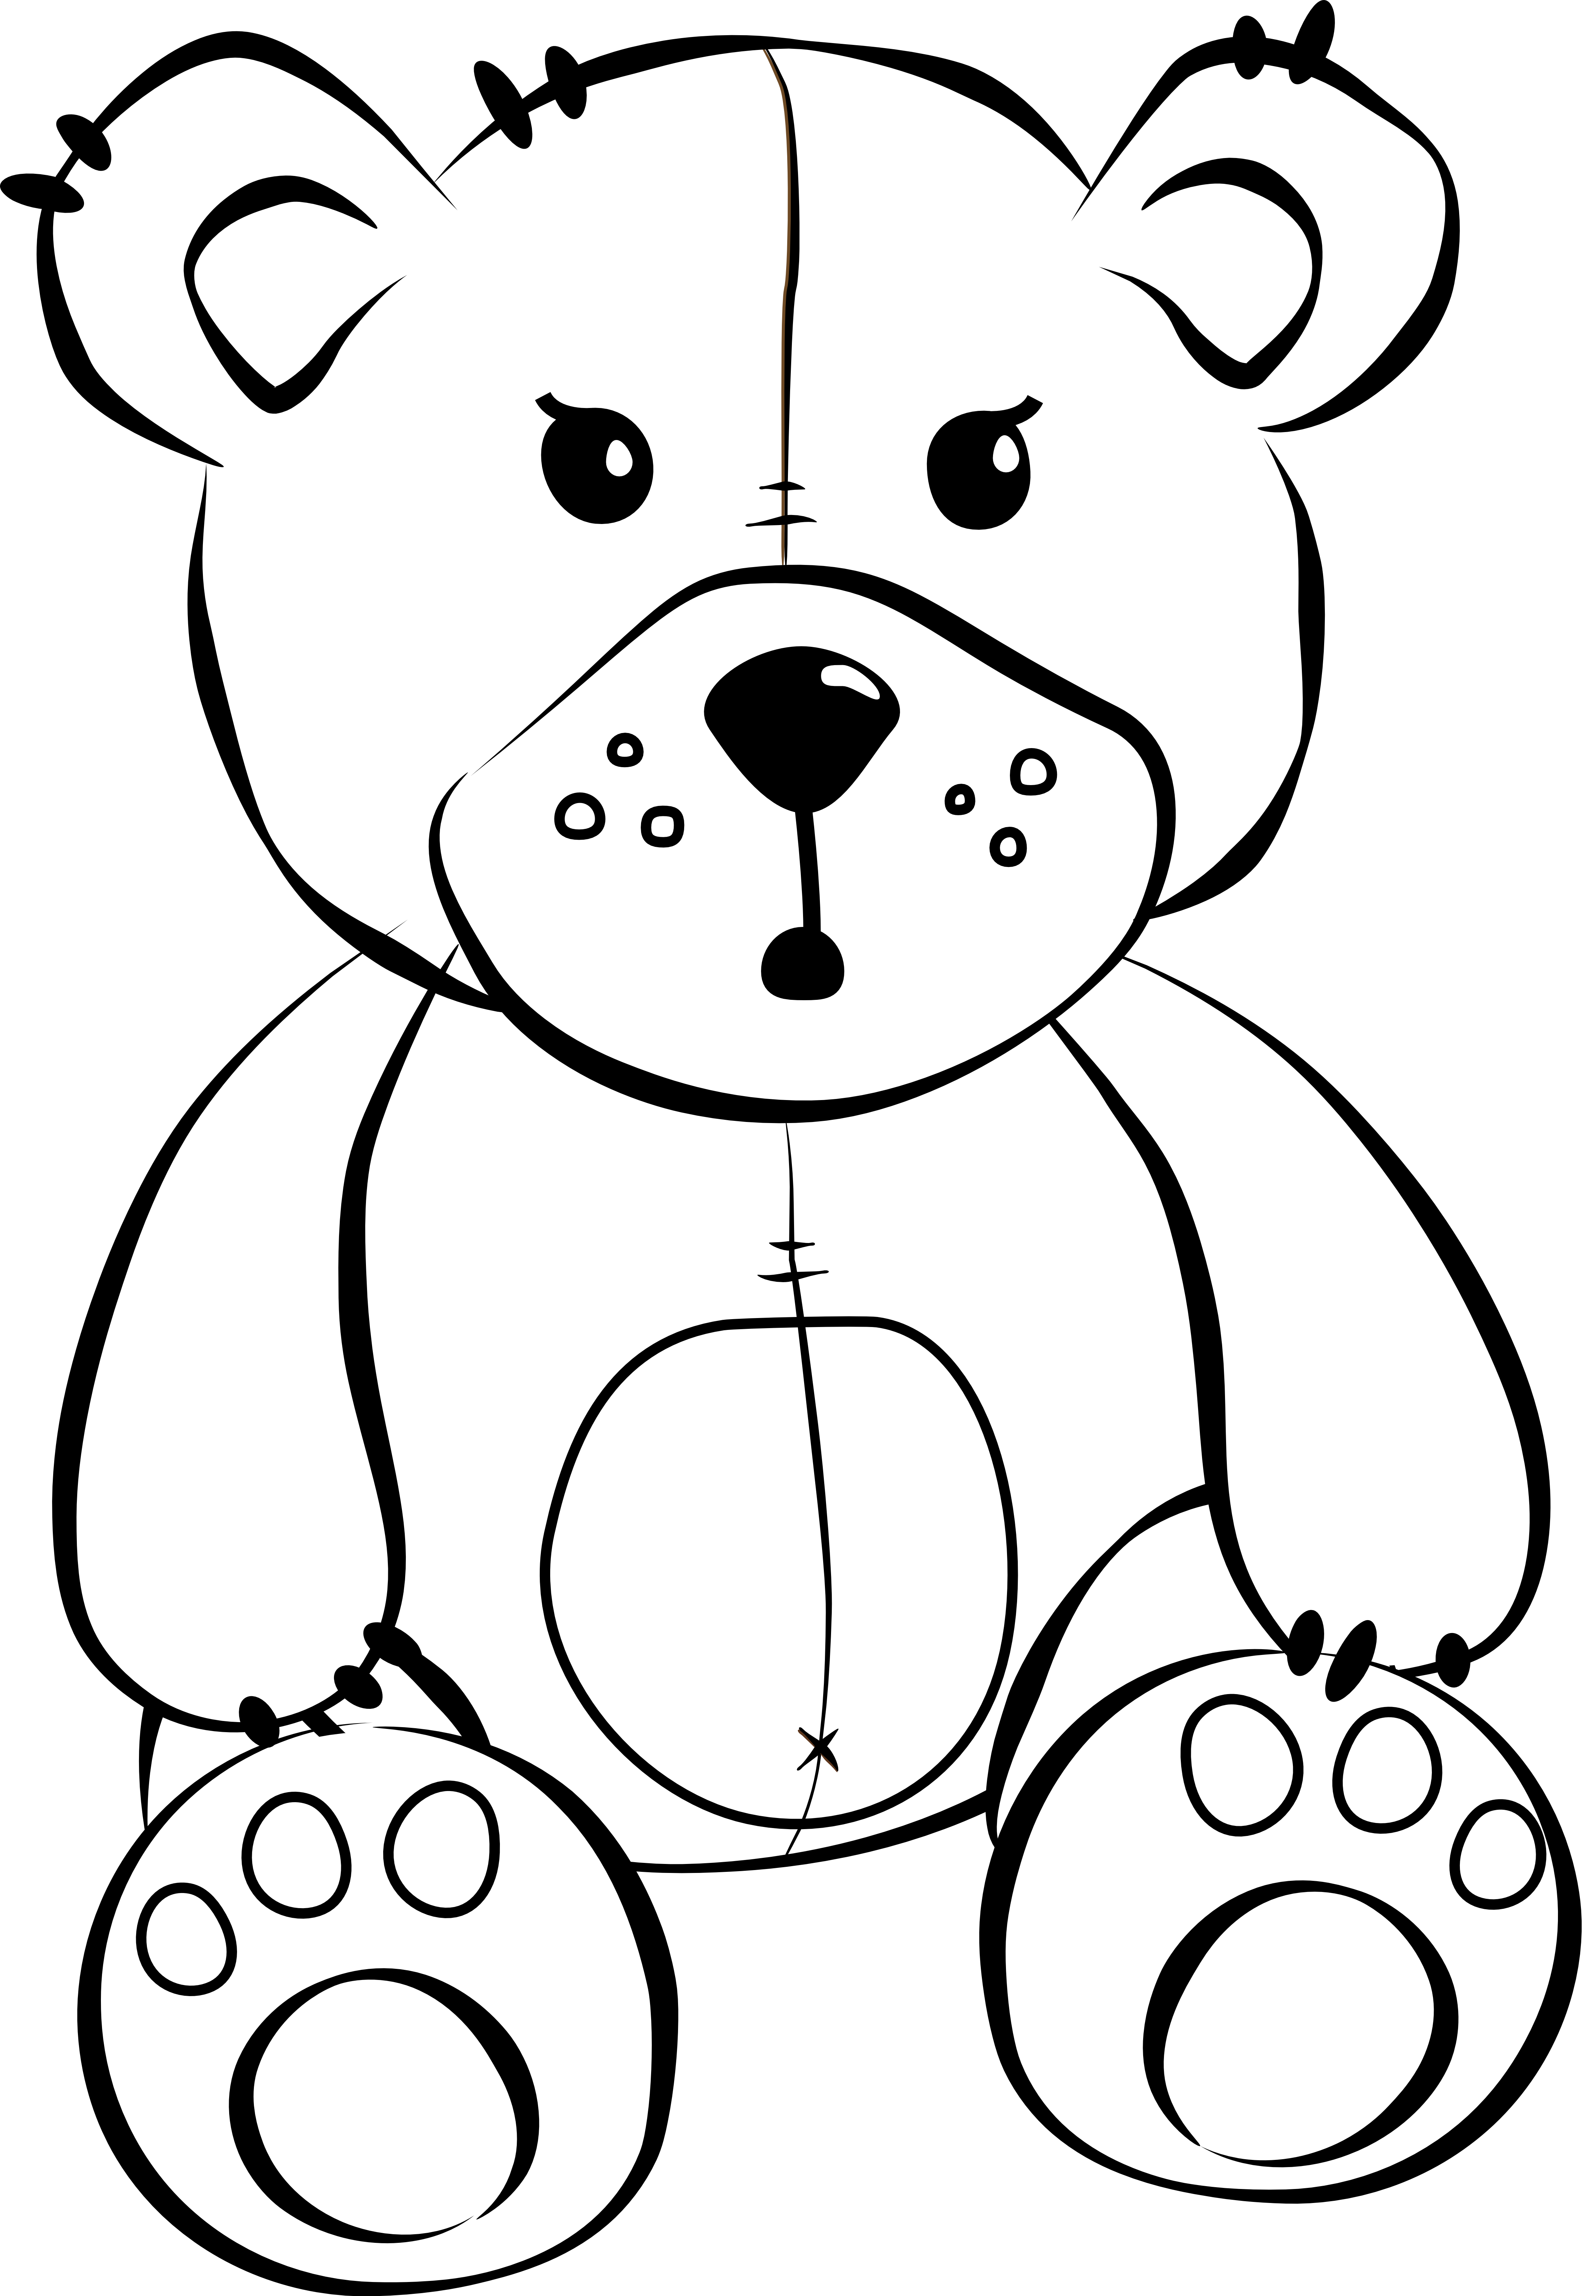 Png Teddy Bear Black And White Cartoon Free Download Clip Art On 4444